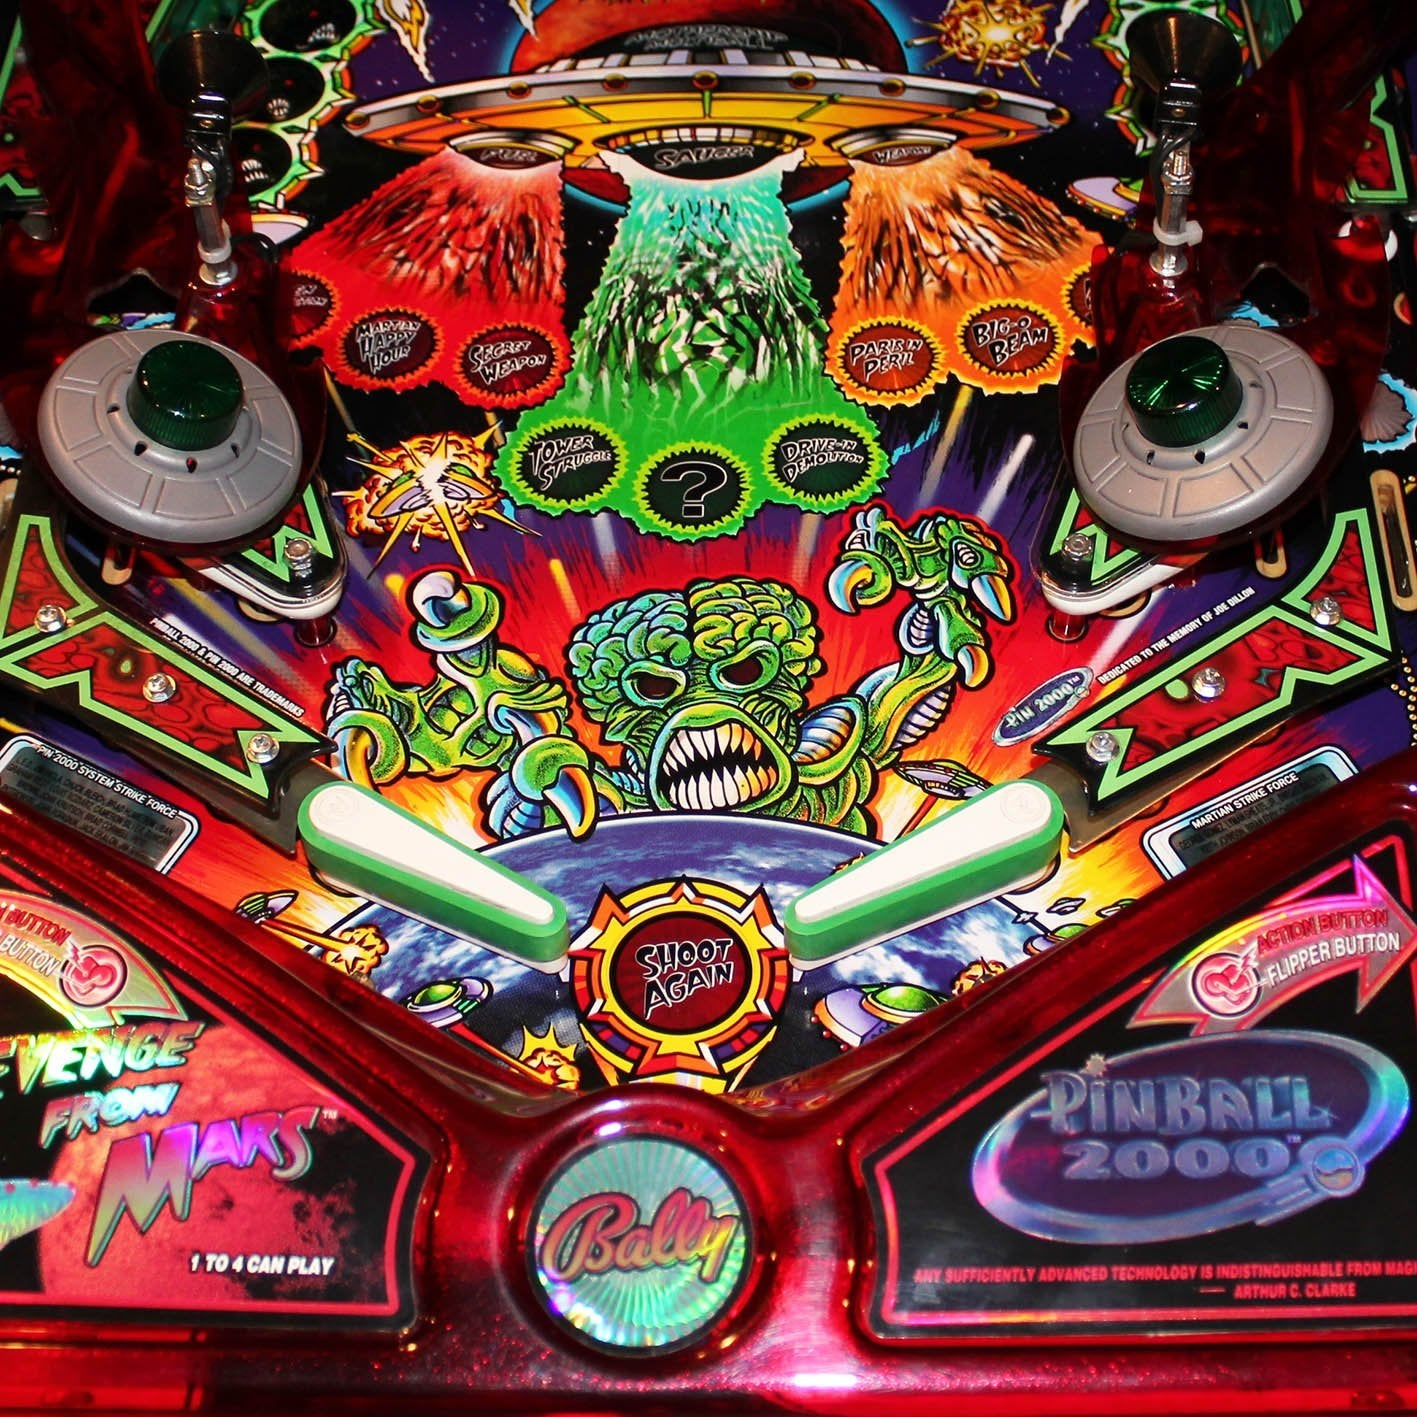 1999 Revenge From Mars Pinball Machine 'Coming Soon' by Bally